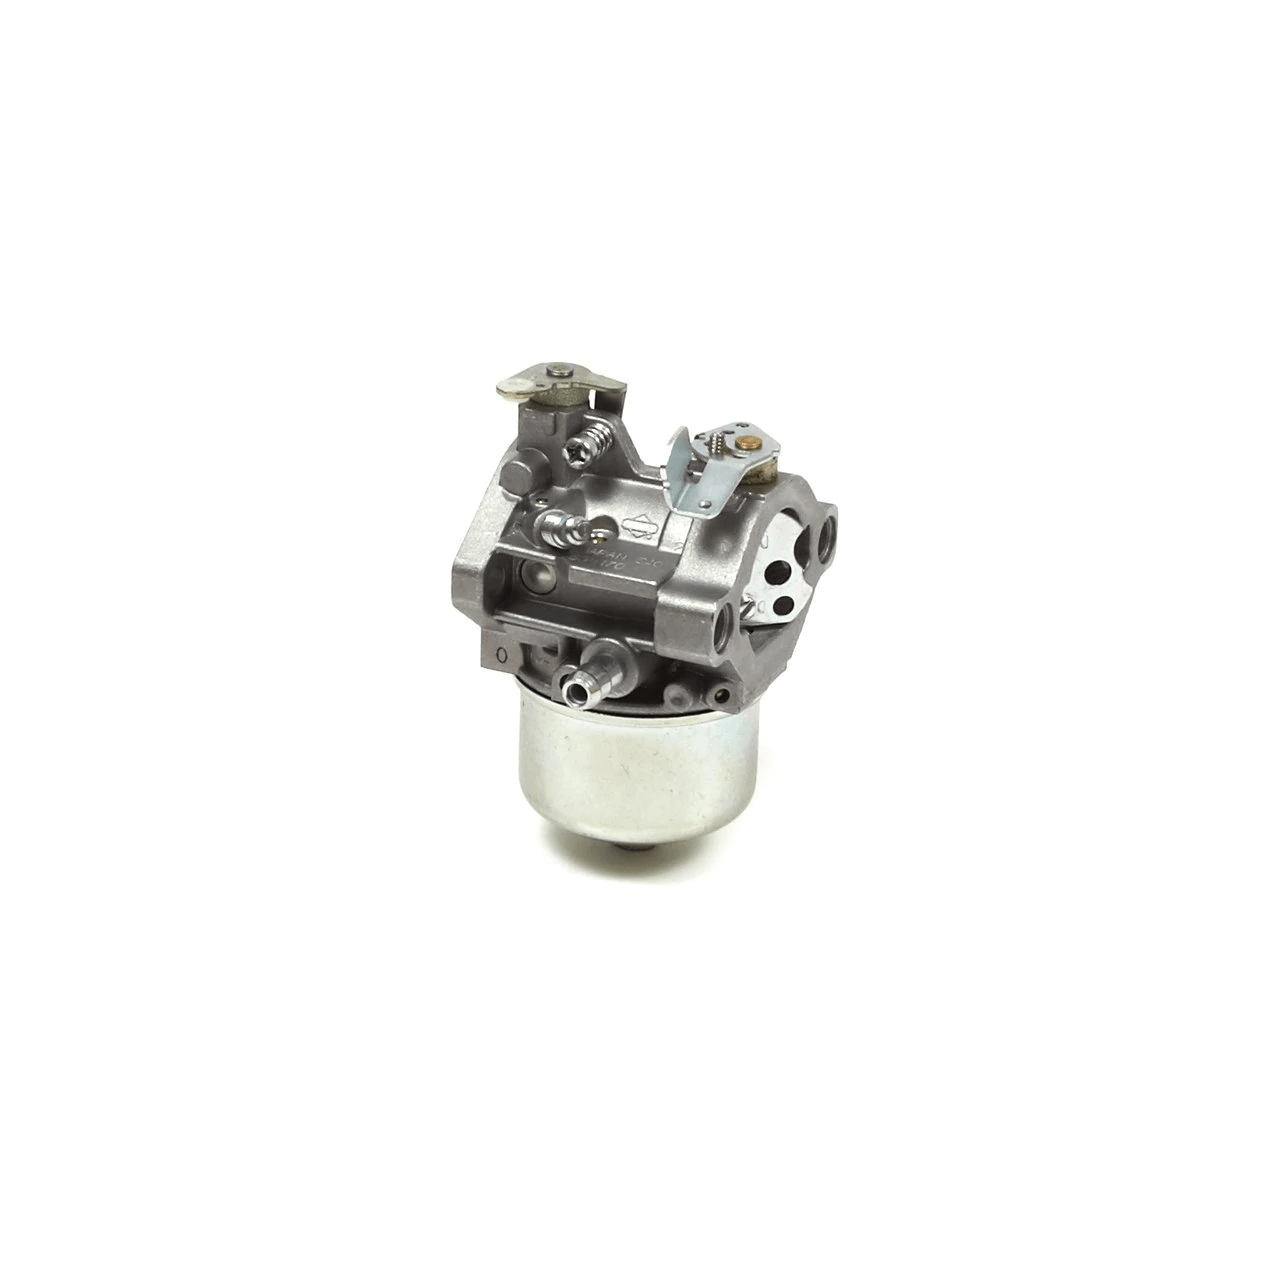 hight resolution of briggs stratton 698171 carburetor where used part number 698171 model name diagram 283702